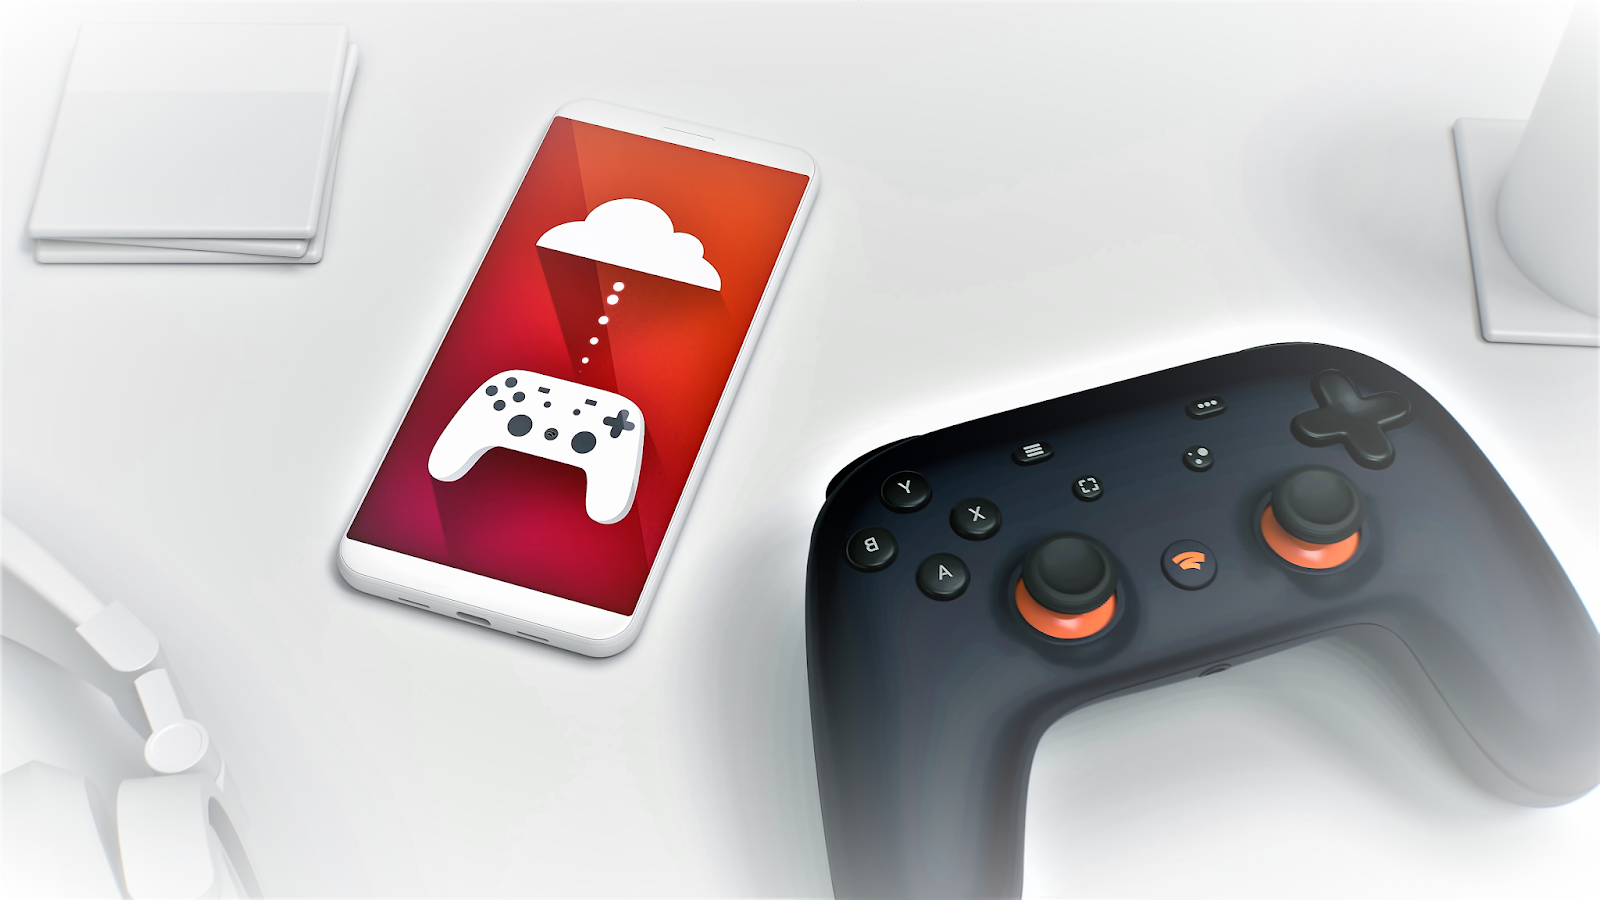 What is stadia and how it works picture.